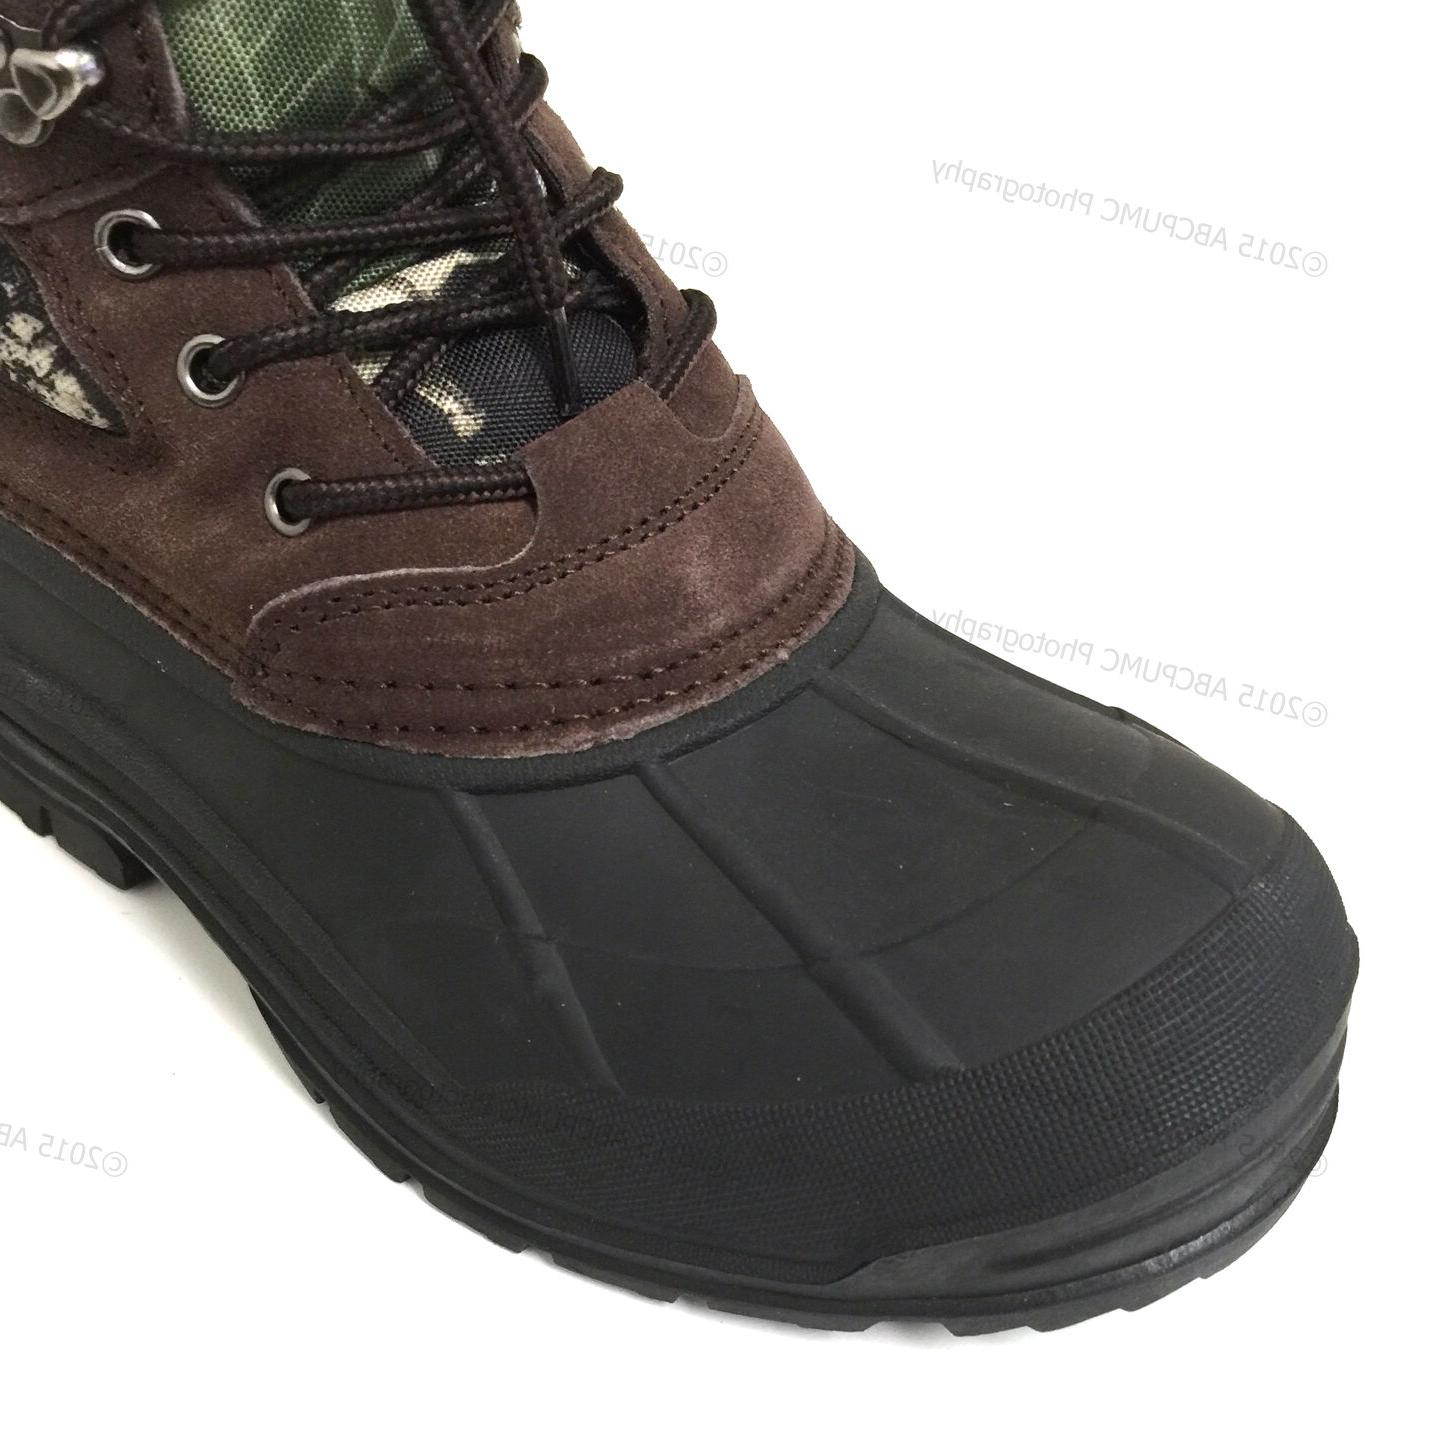 New Boots Camouflage Leather Waterproof